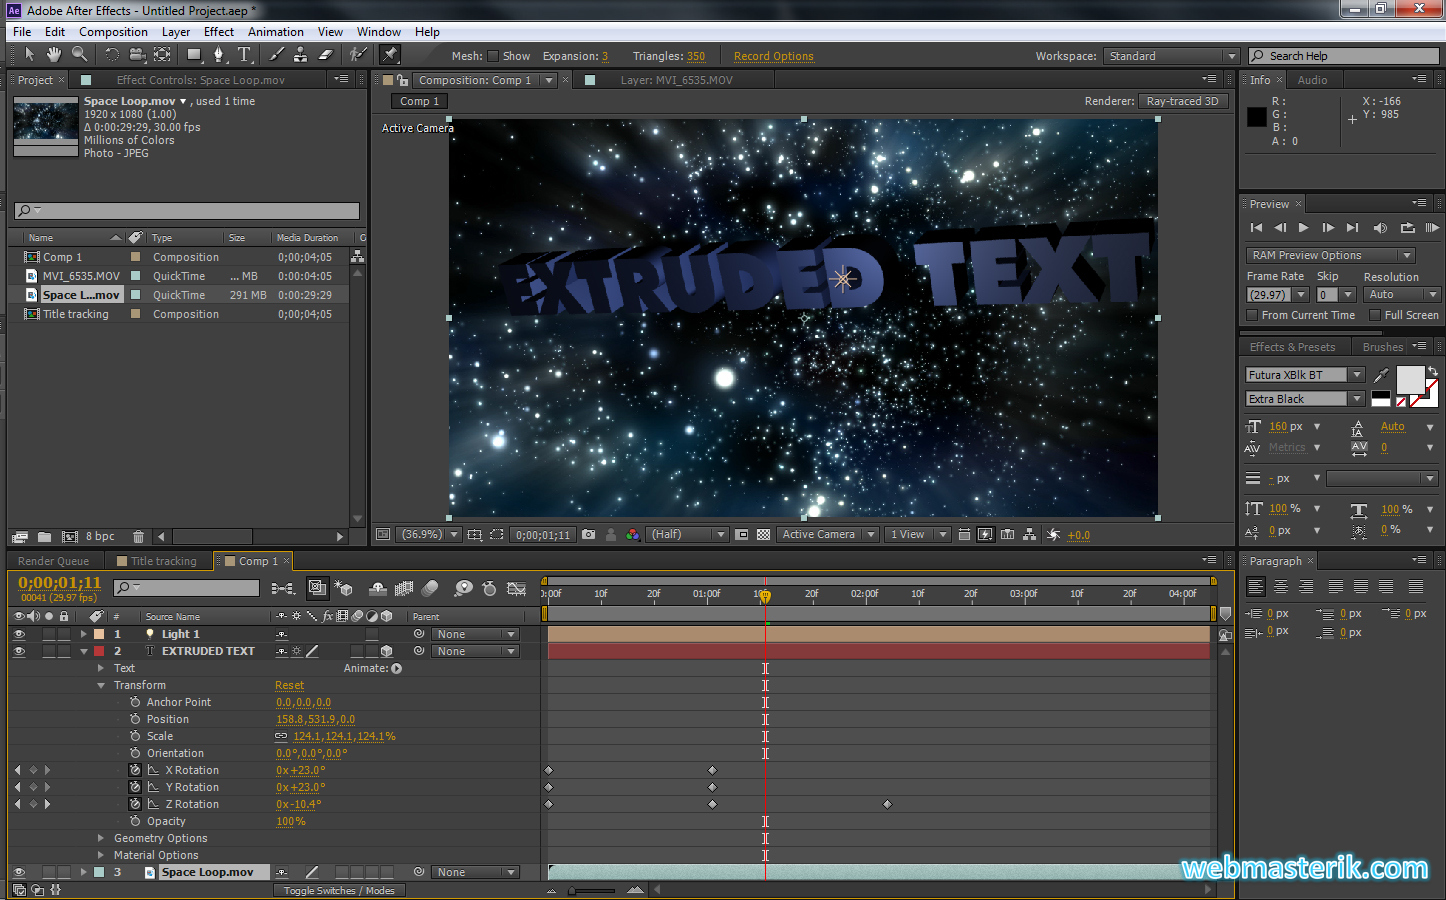 Скриншот в Adobe After Effects CS6